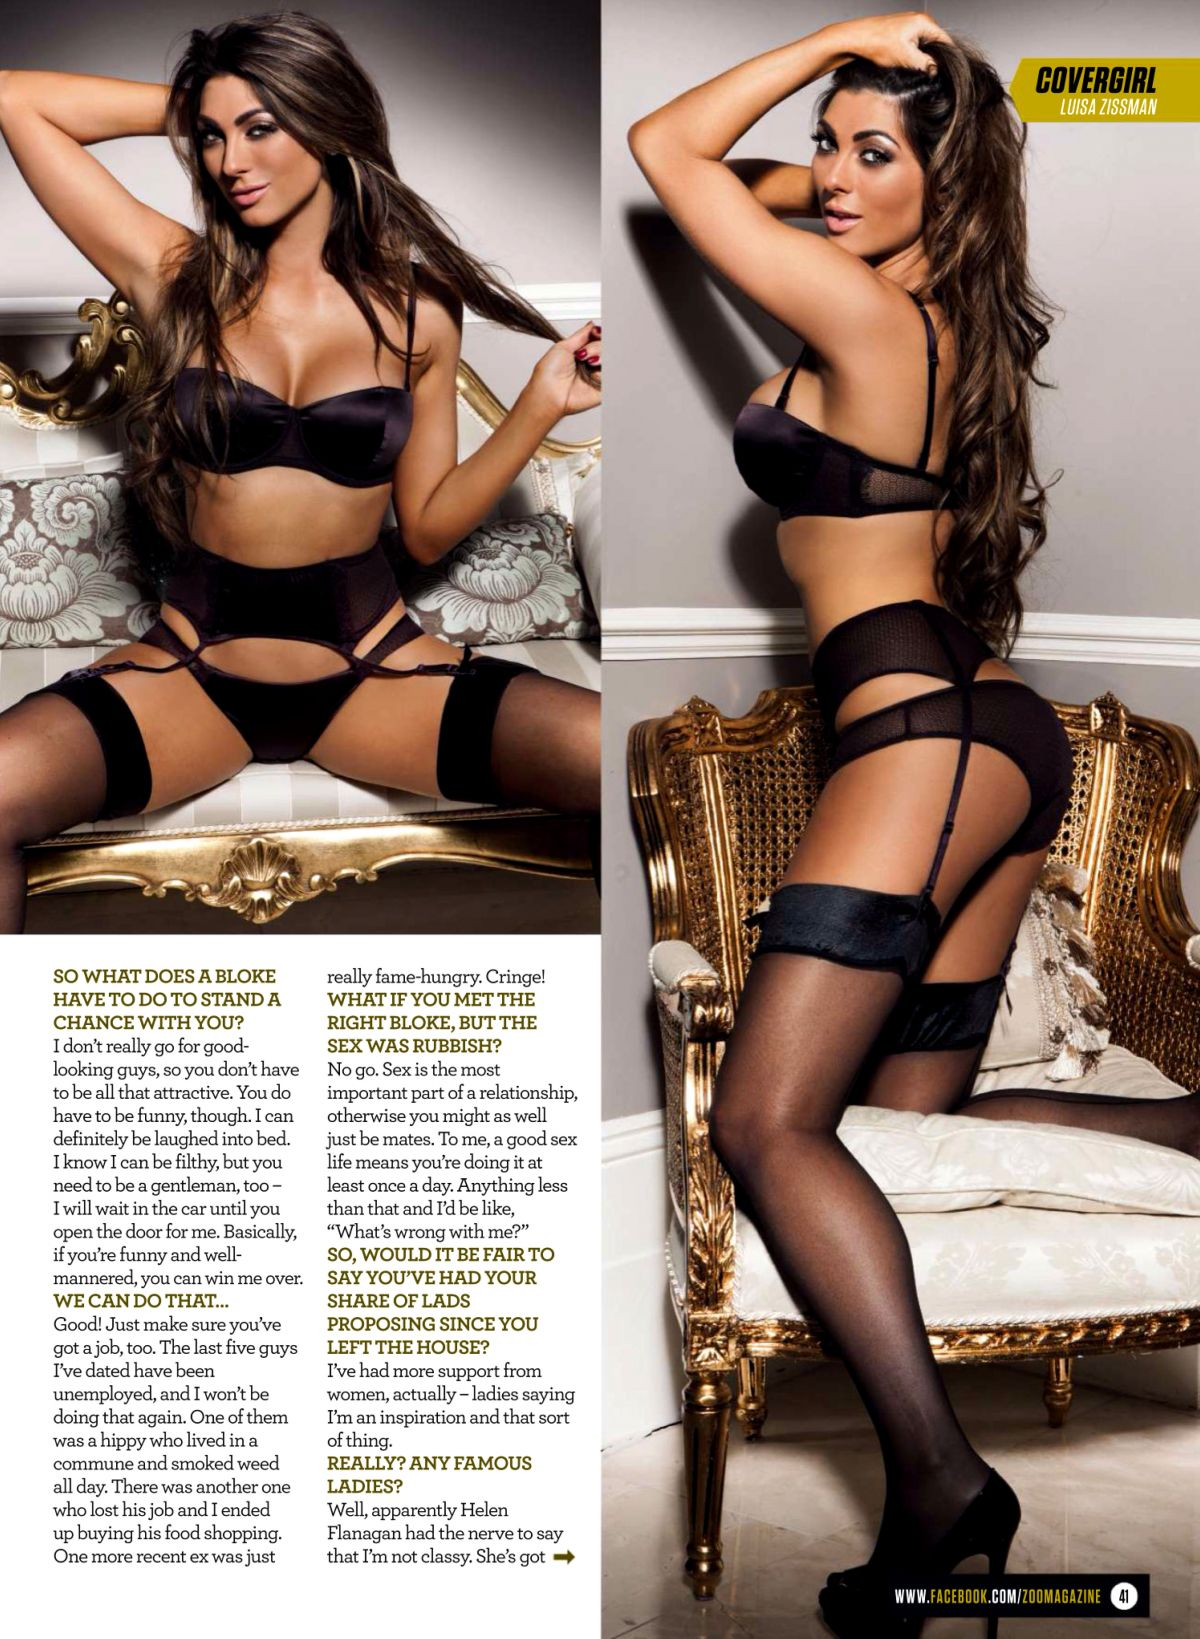 luisa-zissman-in-zoo-magazine-20th-february-2014-issue_10.jpg - 329.04 KB